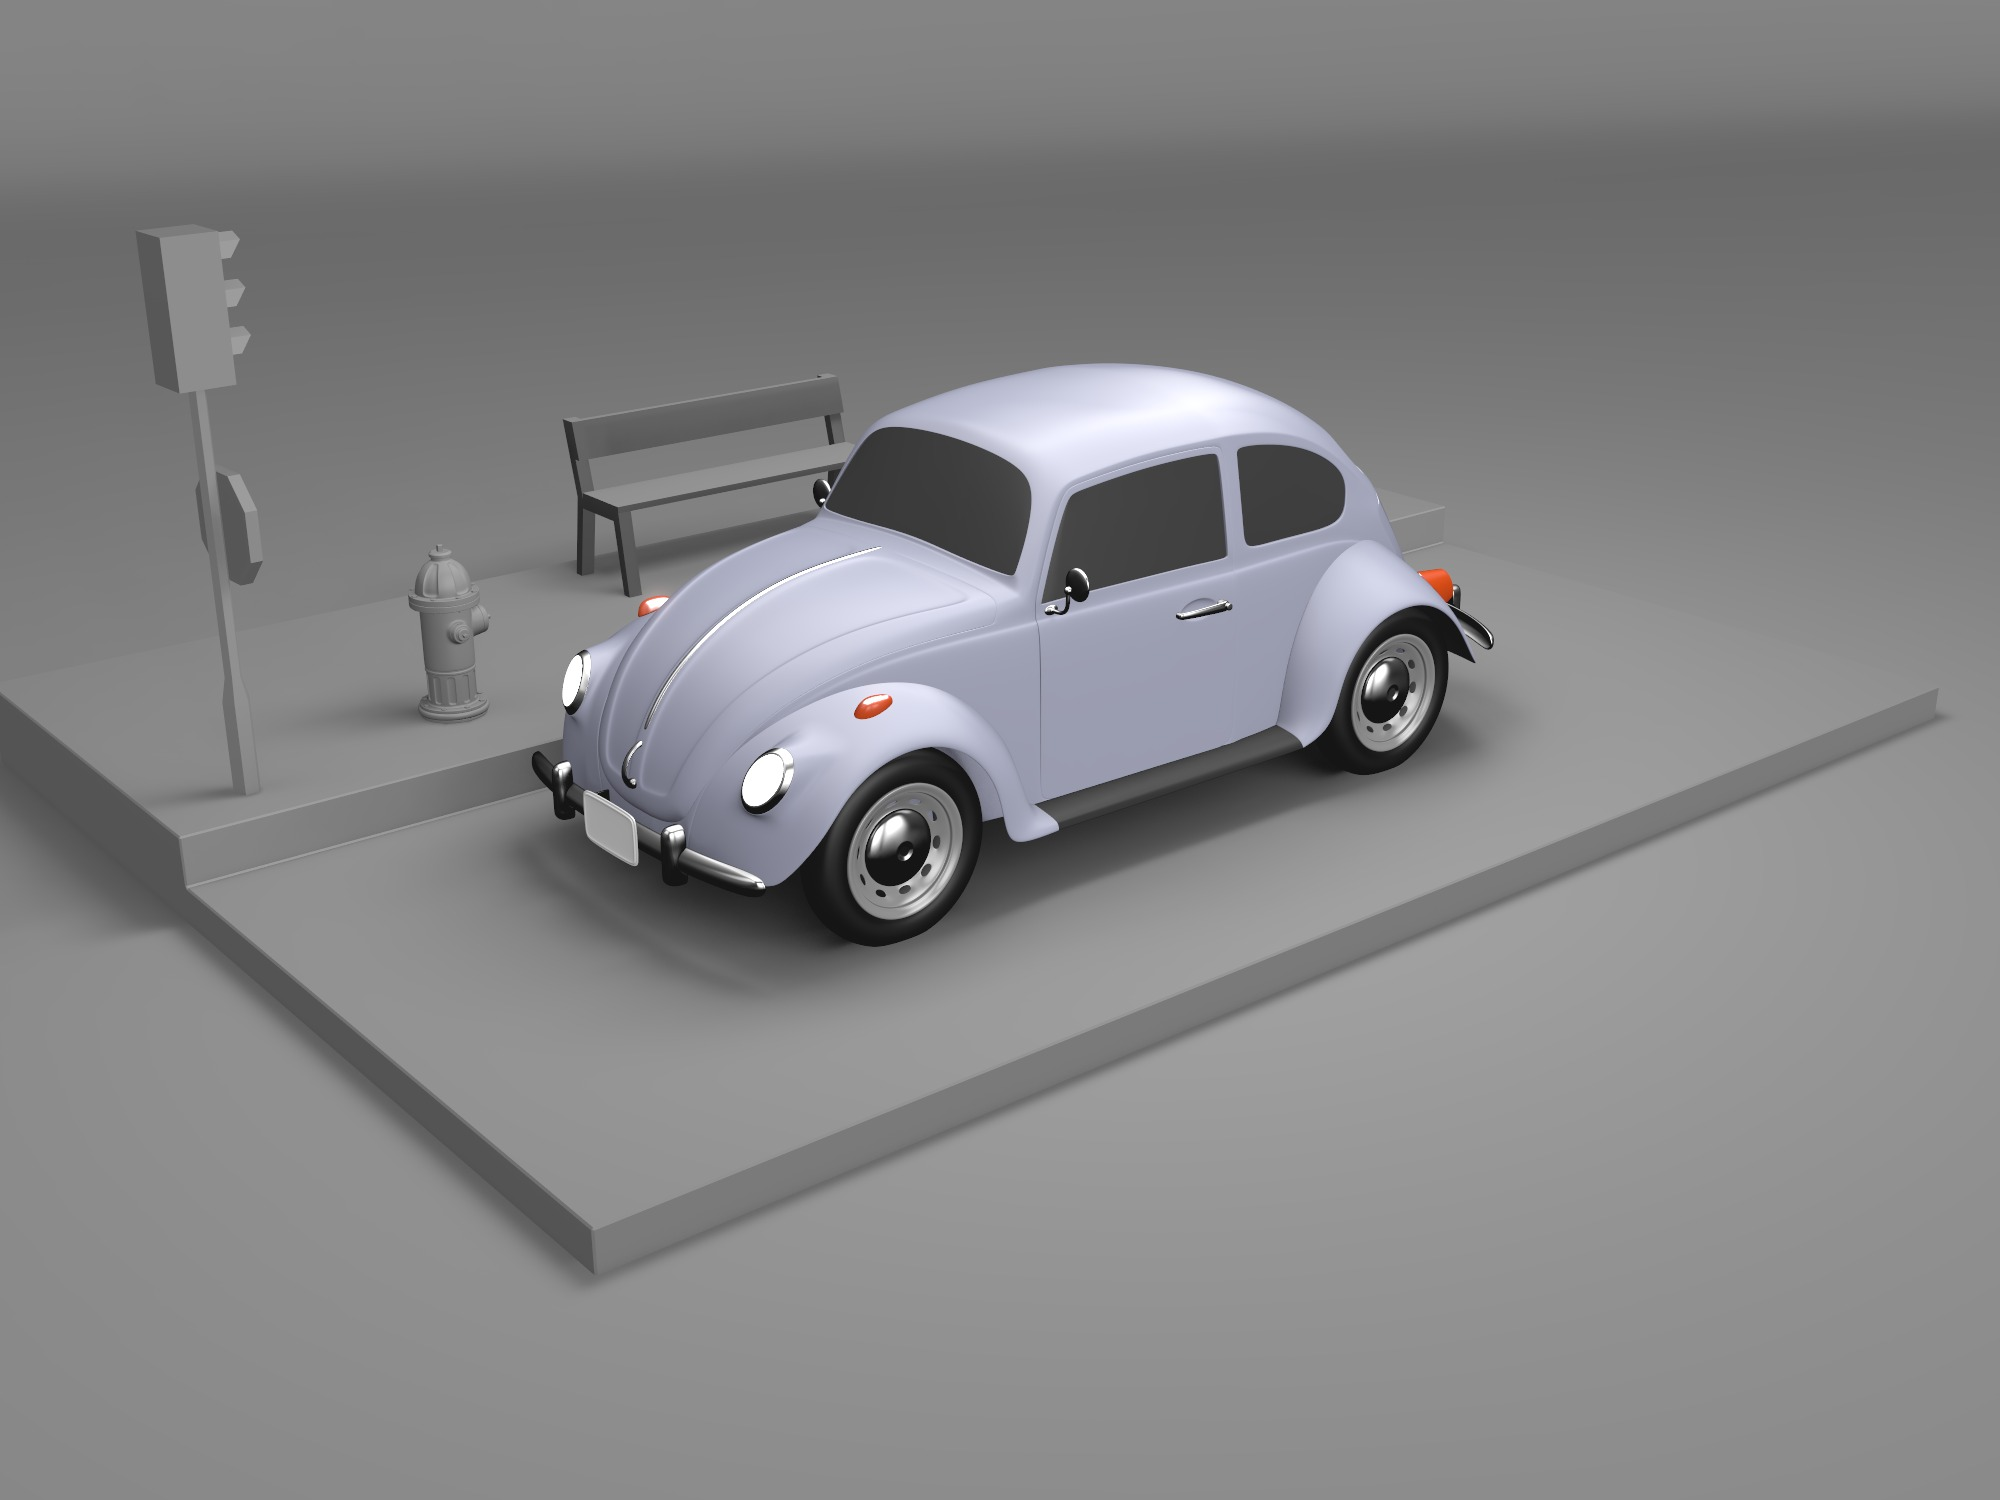 VW Beetle - 3D design by Adrian on Aug 15, 2018